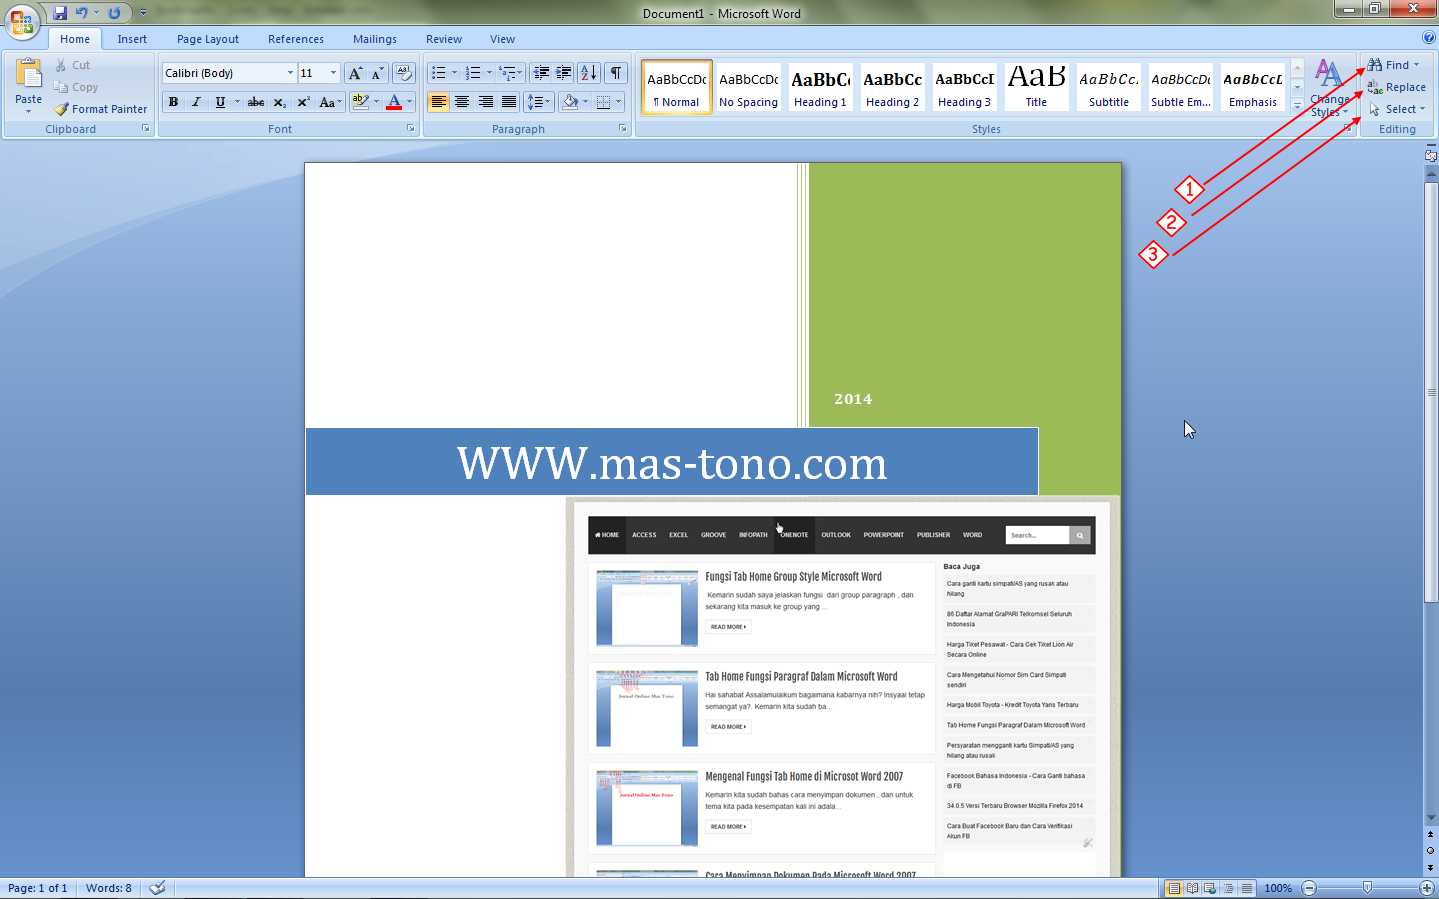 Mengenal 3 Icon Tab Home Group Editing di Microsoft Word 2007